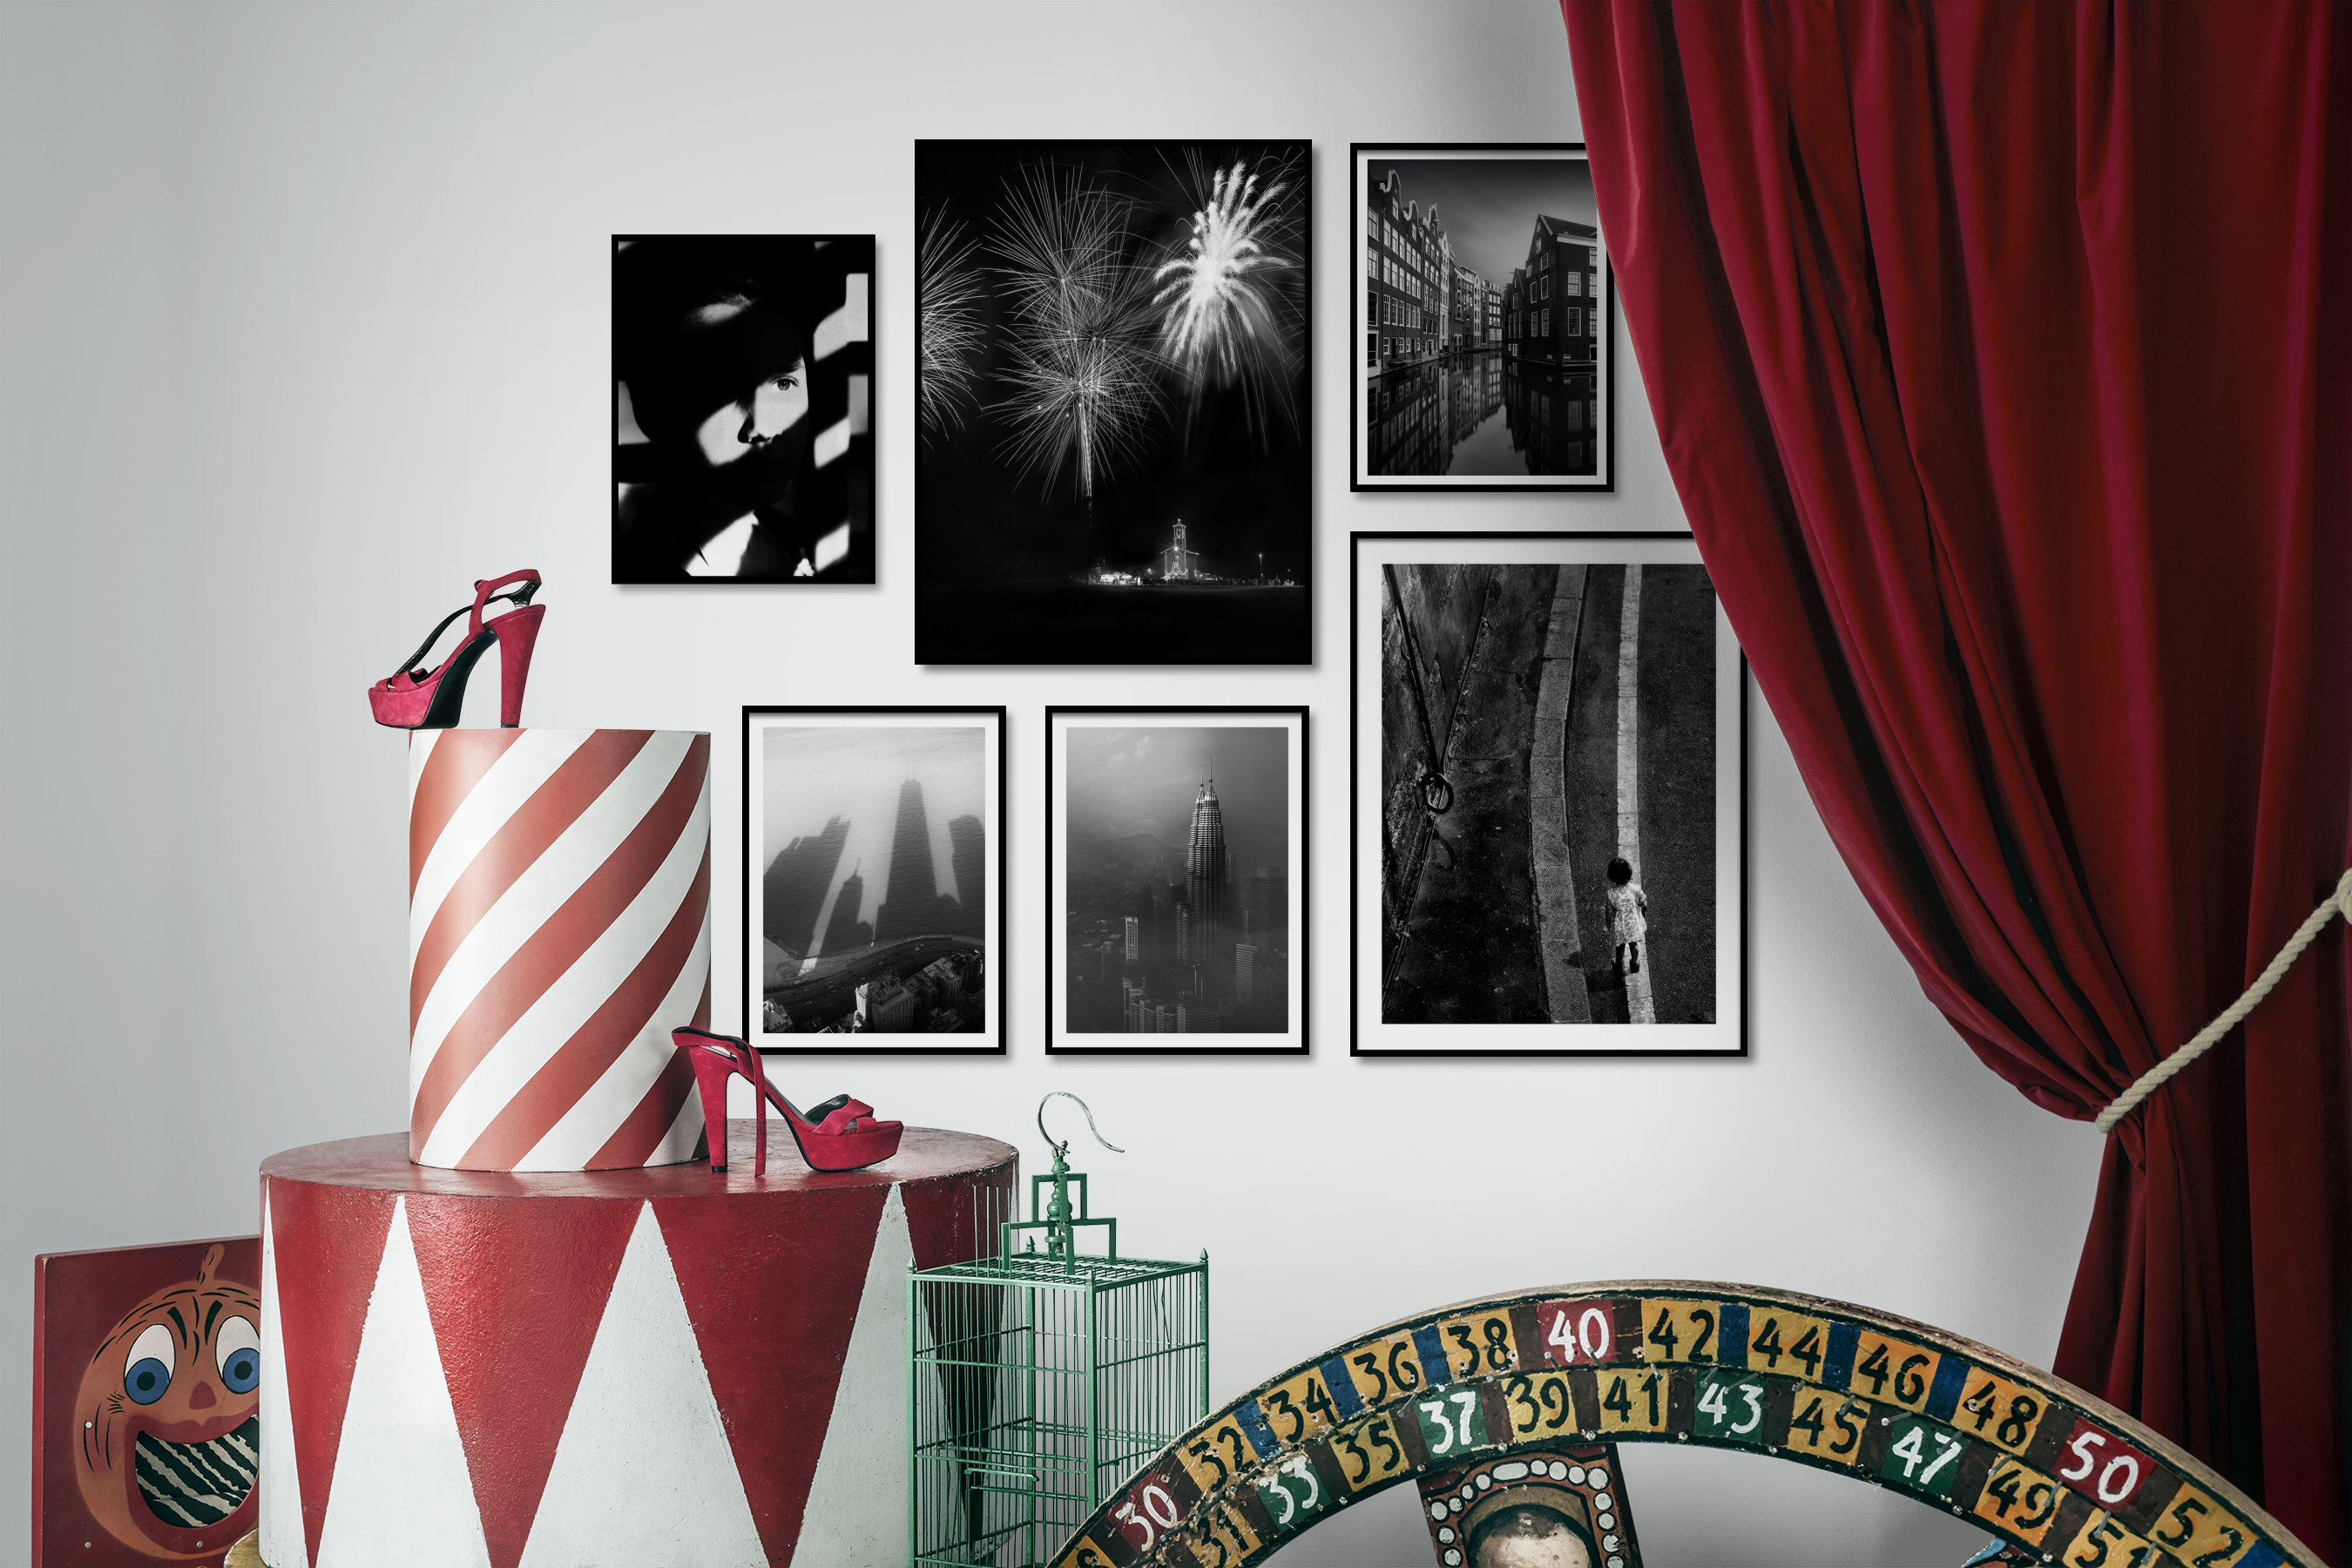 Gallery wall idea with six framed pictures arranged on a wall depicting Artsy, Black & White, For the Moderate, Dark Tones, Country Life, City Life, and Americana